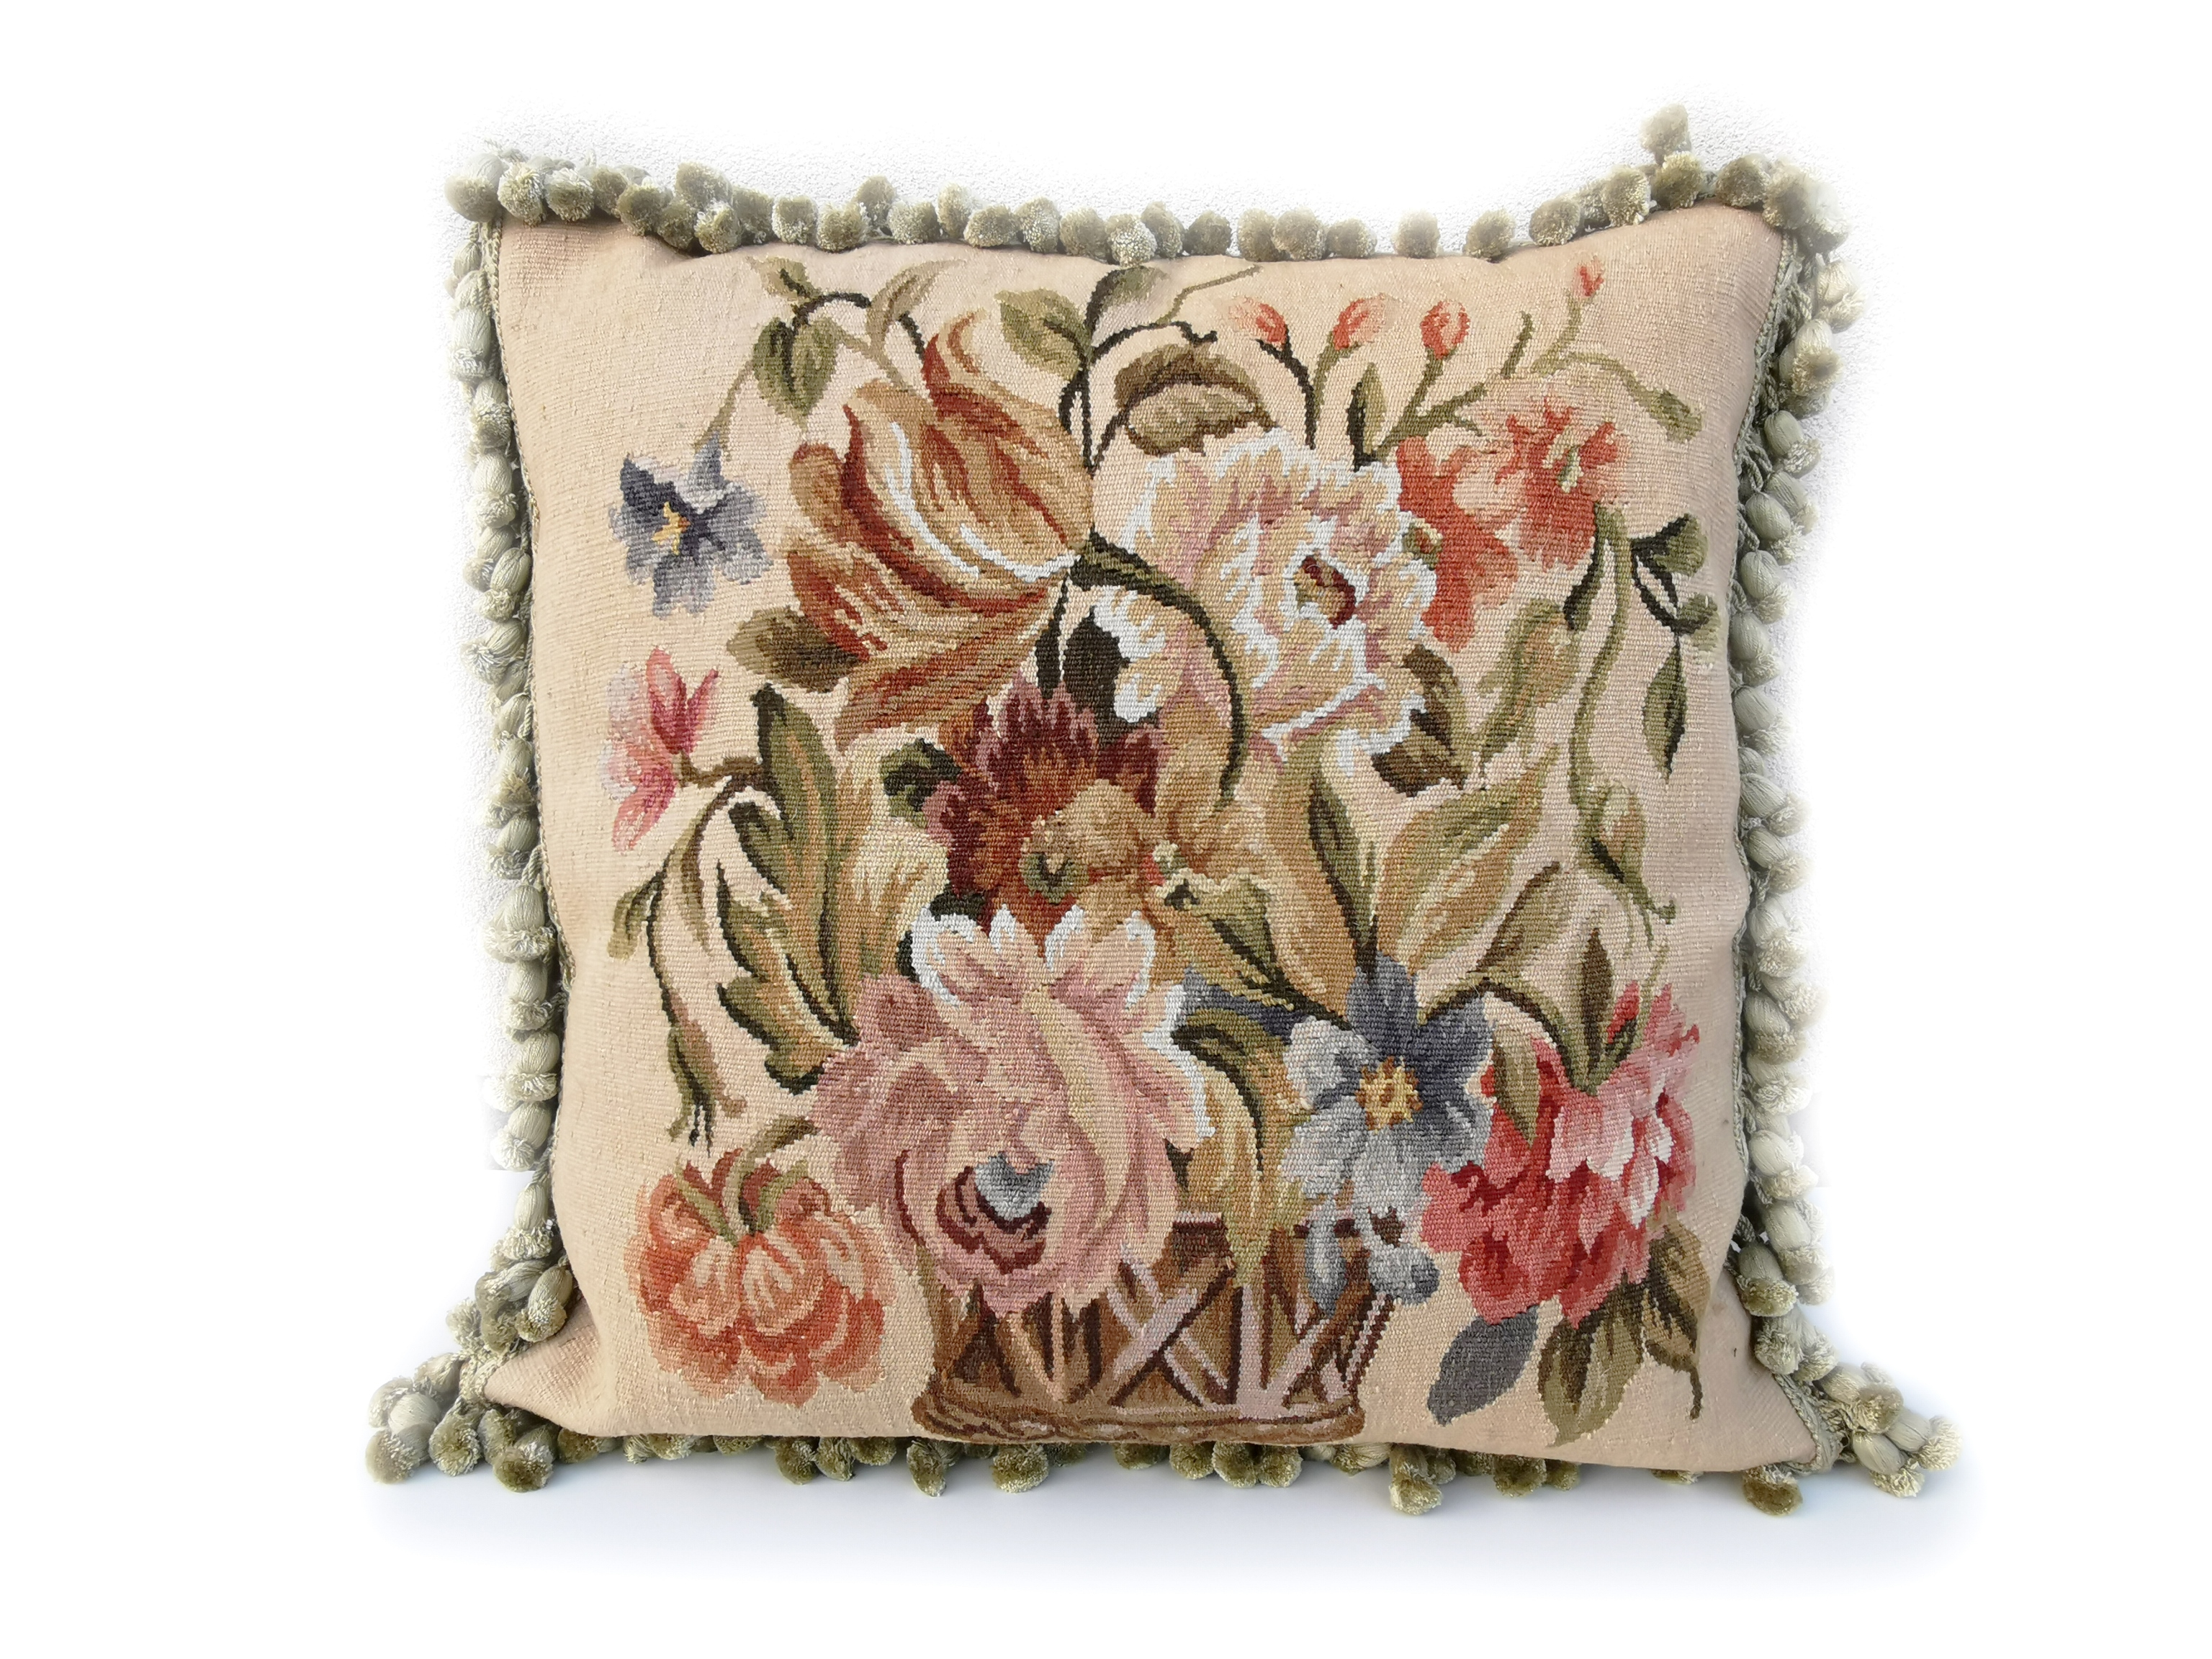 20″ x 20″ Handmade Antique Reproduction Gobelins Tapestry Wool Aubusson Basket of Flowers Cushion Cover Pillow Case 12980010